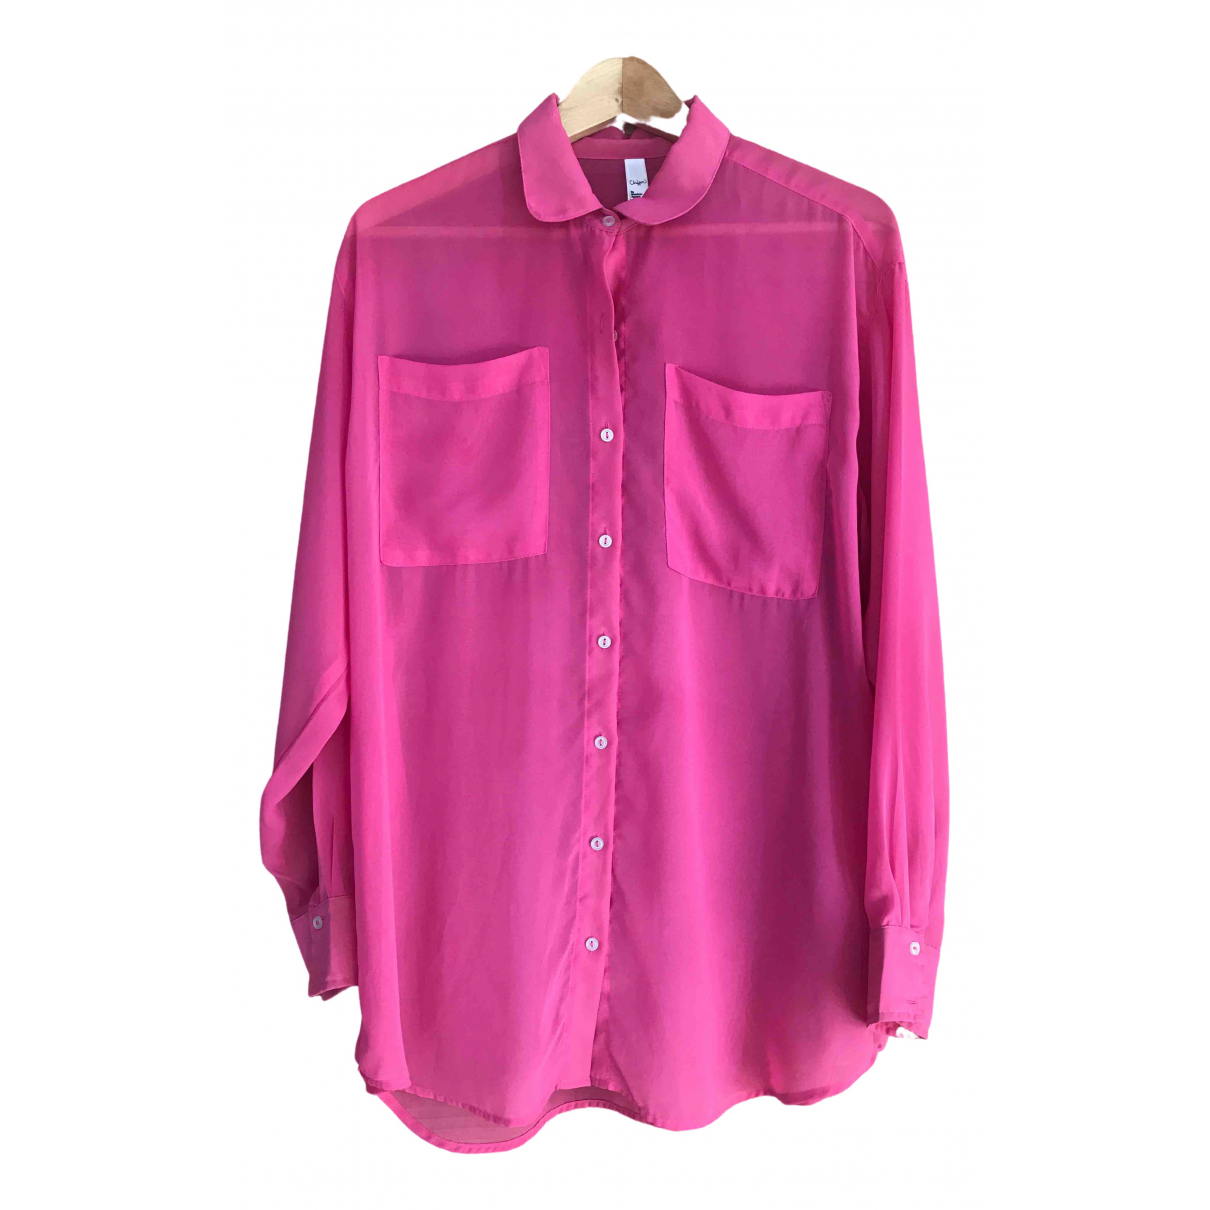 American Apparel \N Pink  top for Women One Size International